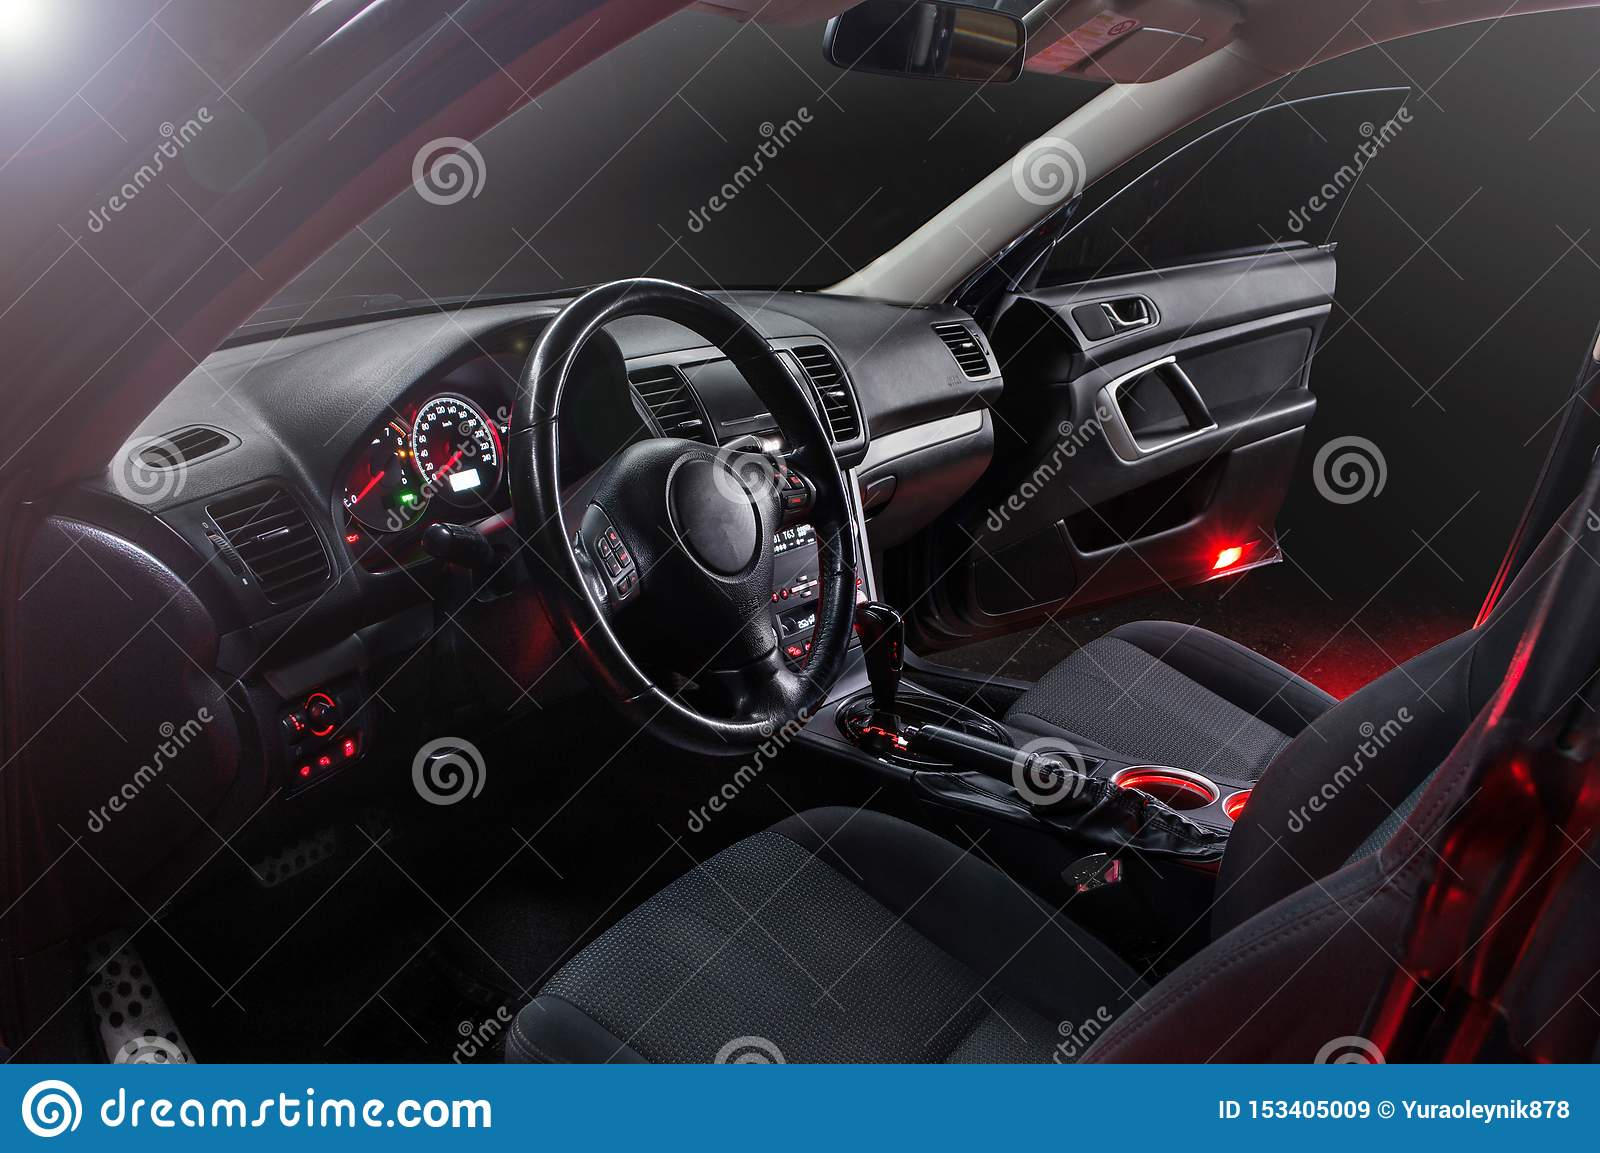 Car Inside Gray Seats Red Dashboard Night Photography In The Dark Stock Image Image Of Wheel Gray 153405009